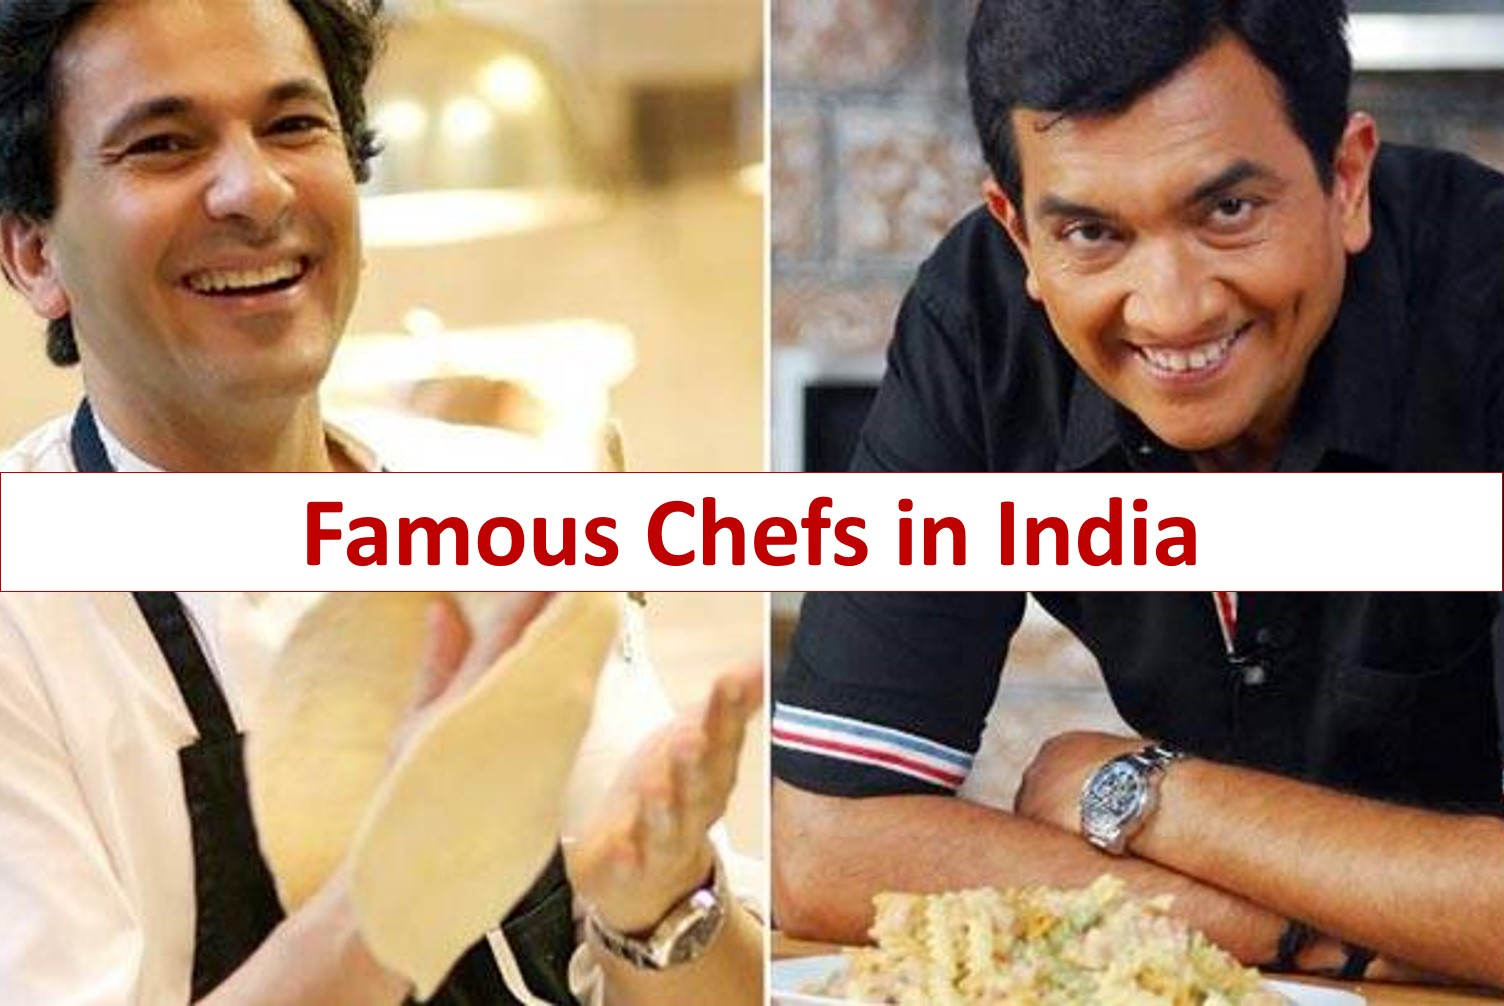 Top 7 Chefs from India who've have made our India proud